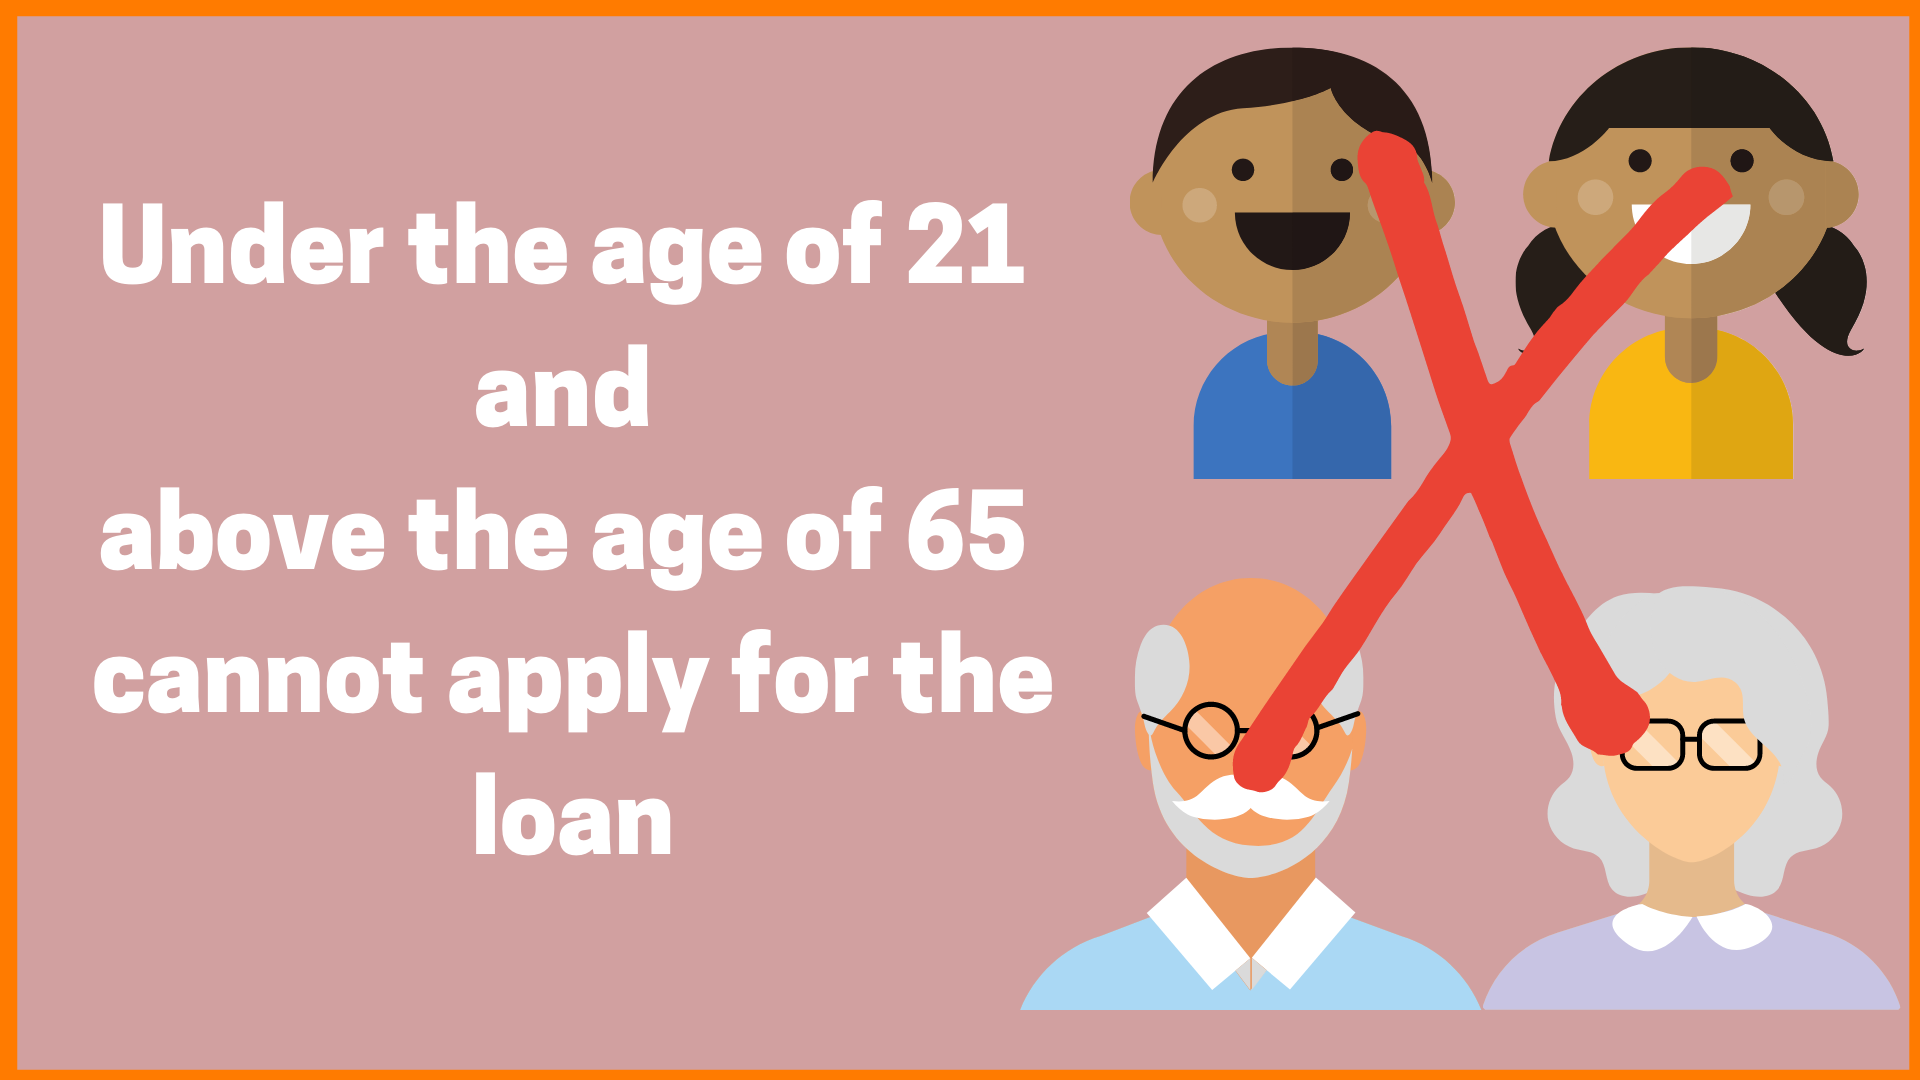 Age Group who can Apply for the Loan